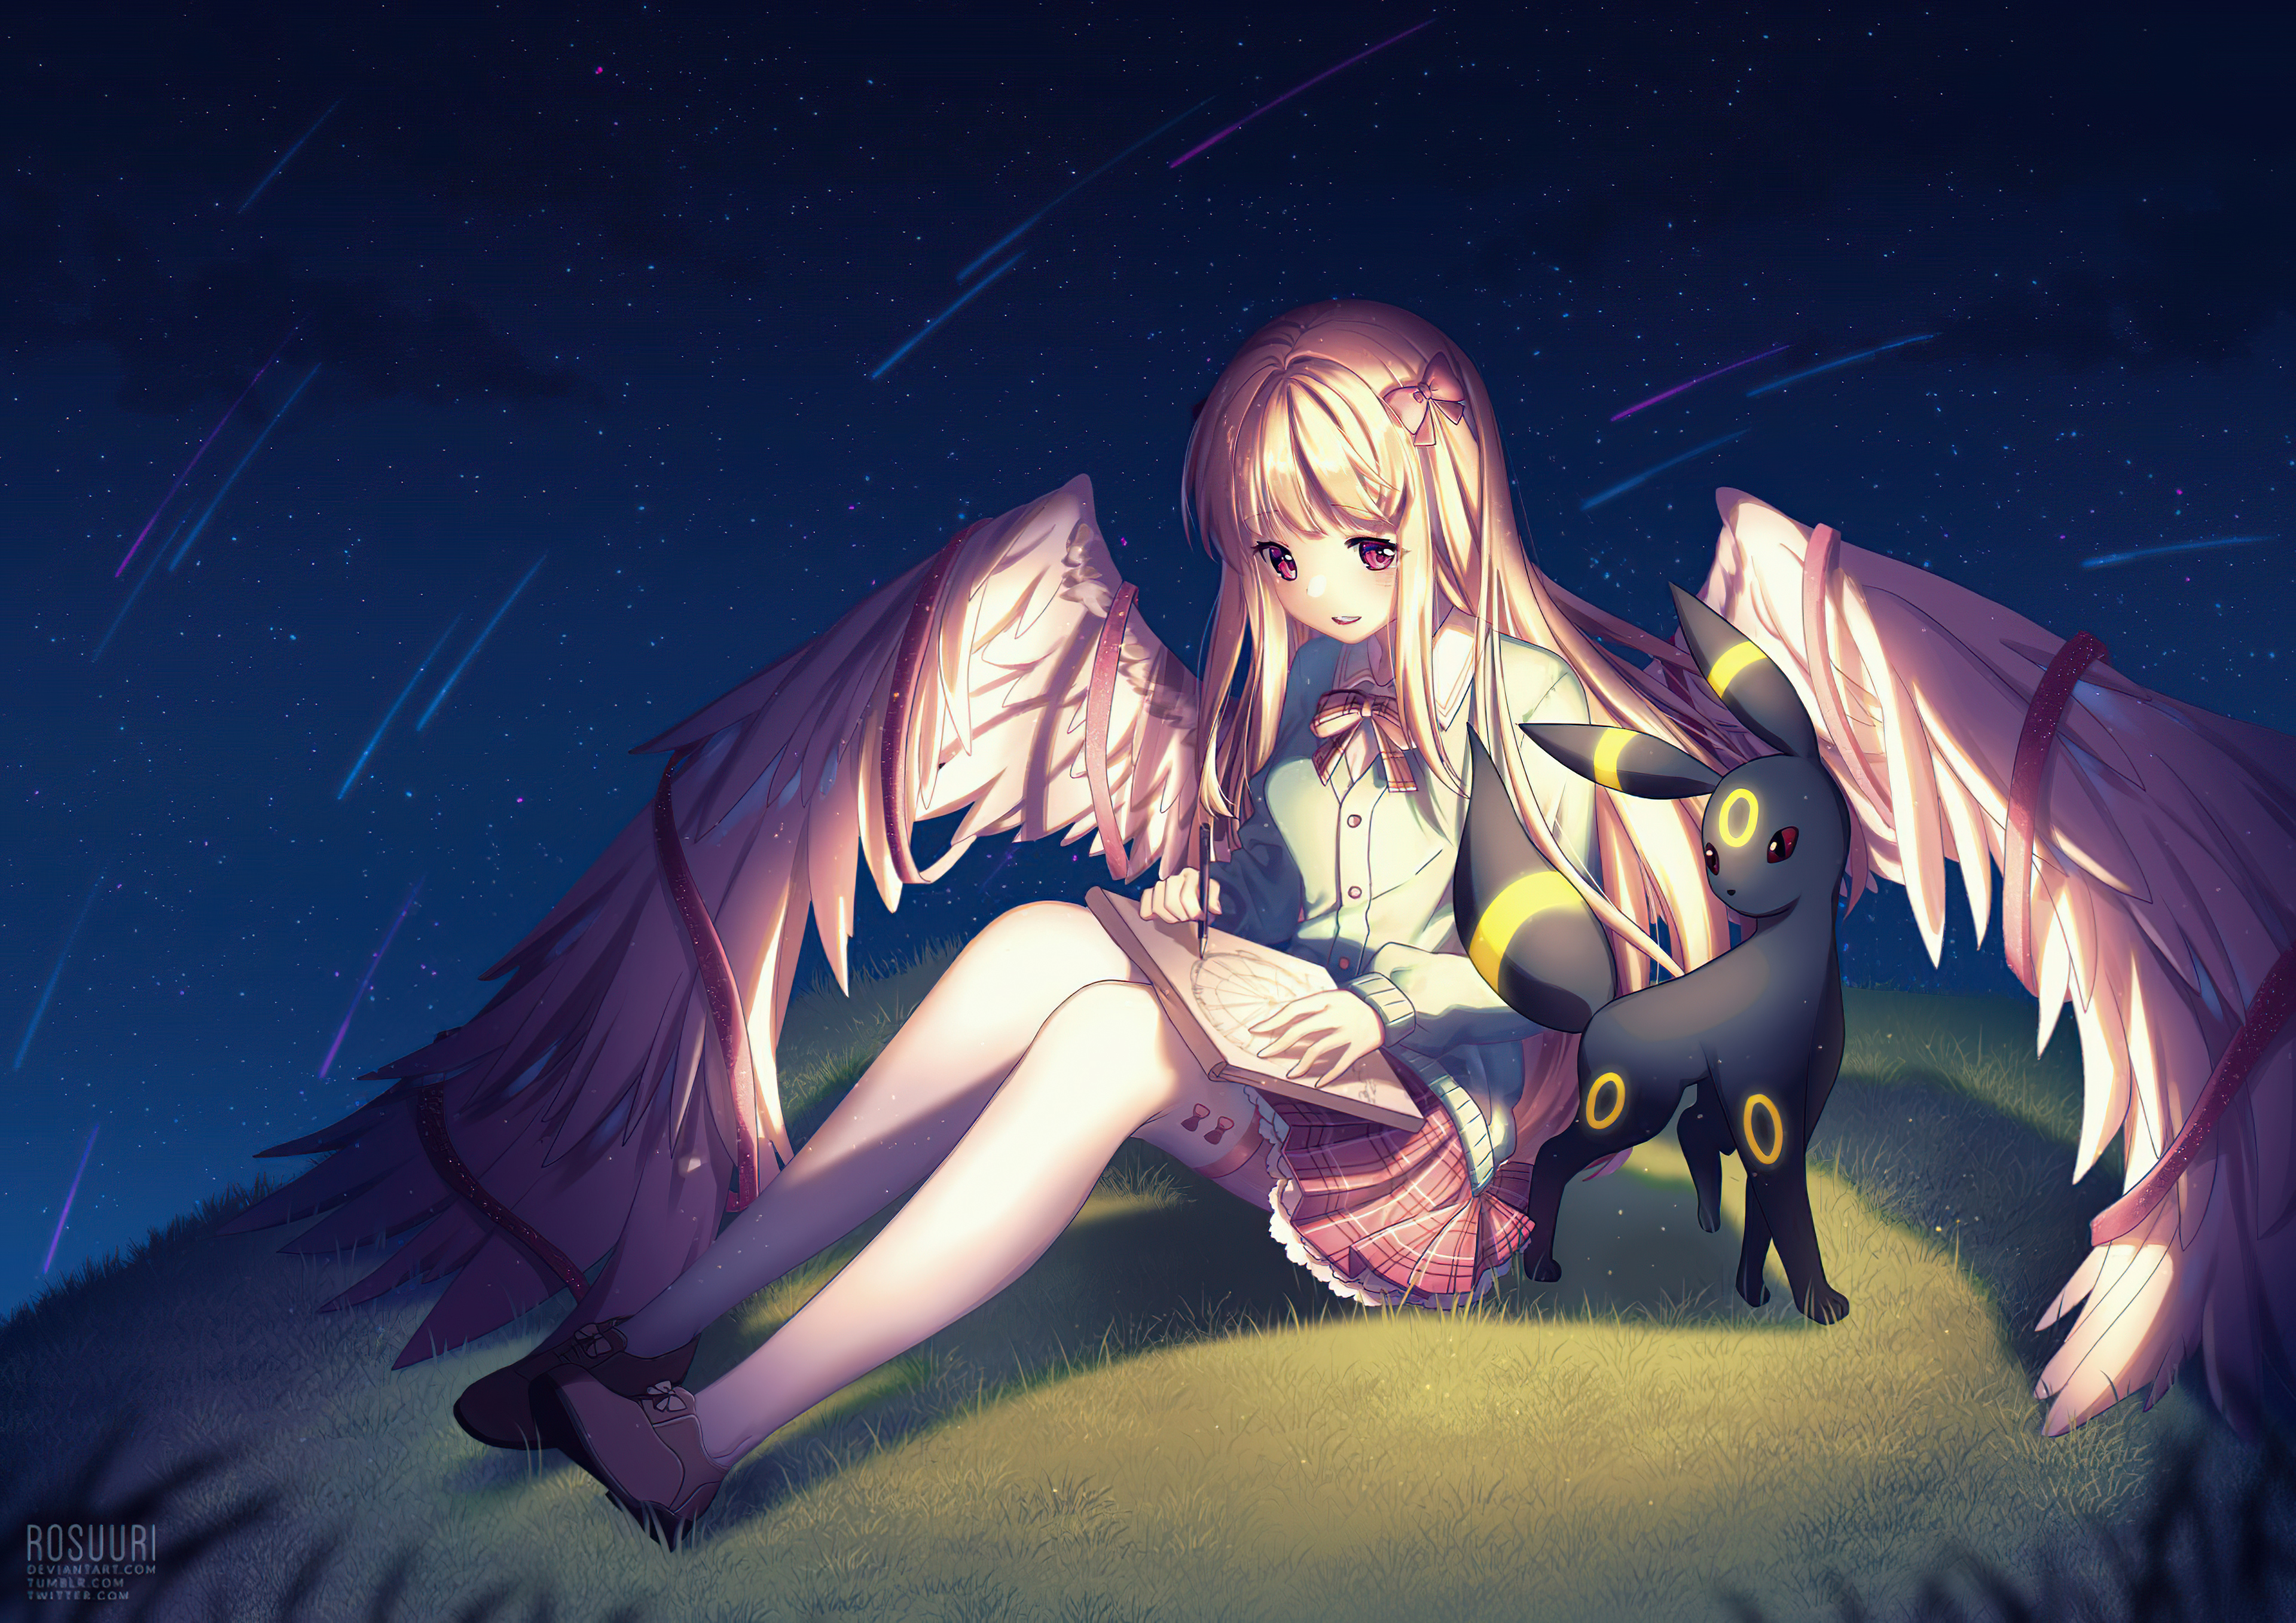 1440x2960 Pokemon Angel Girl Anime Wings 4k Samsung Galaxy Note 9 8 S9 S8 S8 Qhd Hd 4k Wallpapers Images Backgrounds Photos And Pictures